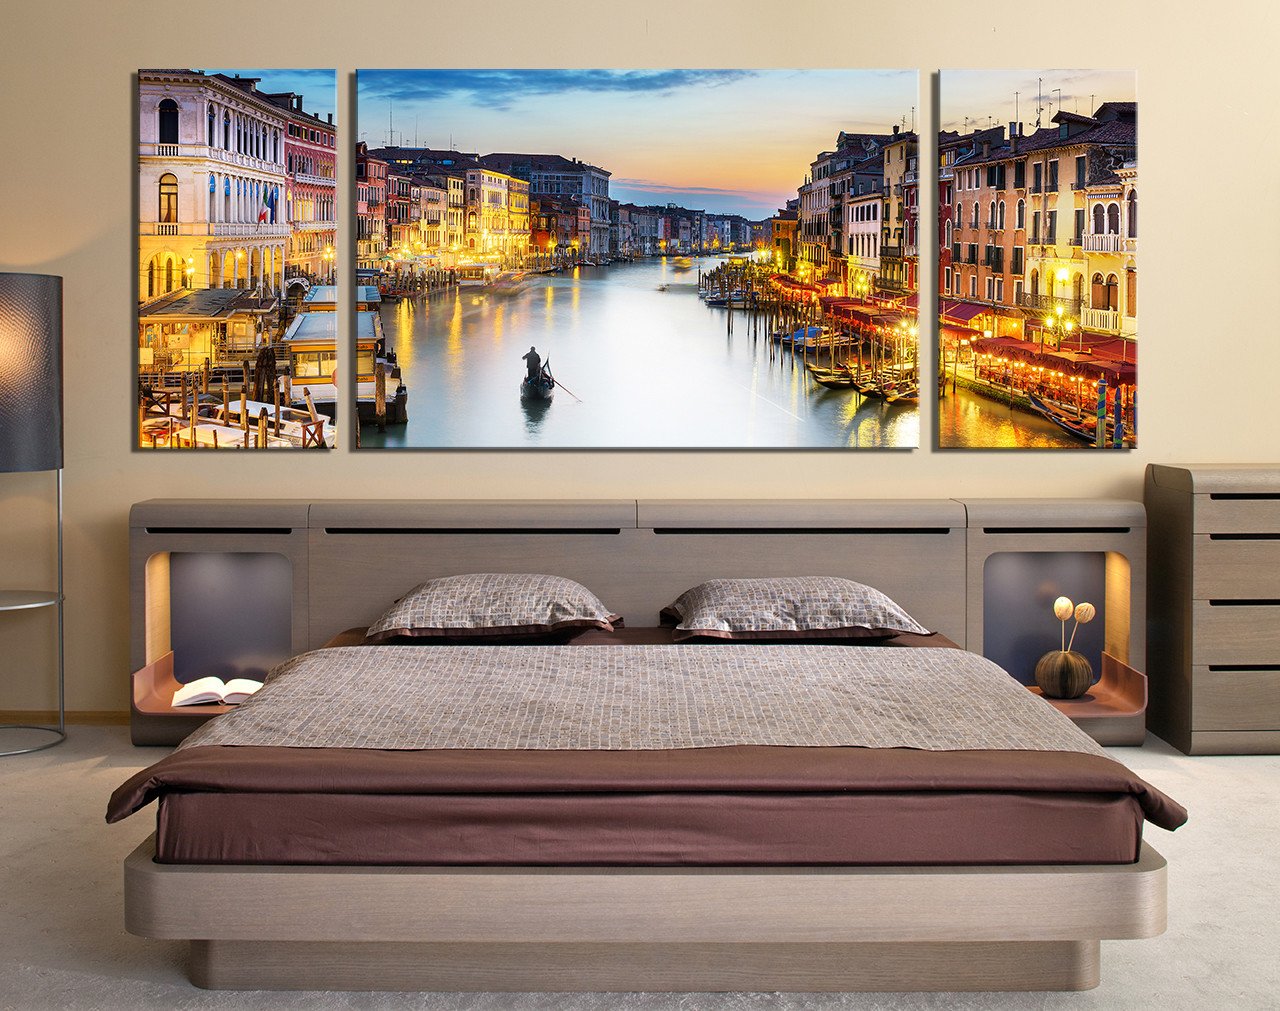 Large bedroom wall decor - 3 Piece Wall Decor Bedroom Group Canvas Yellow City Large Pictures Bedroom Wall